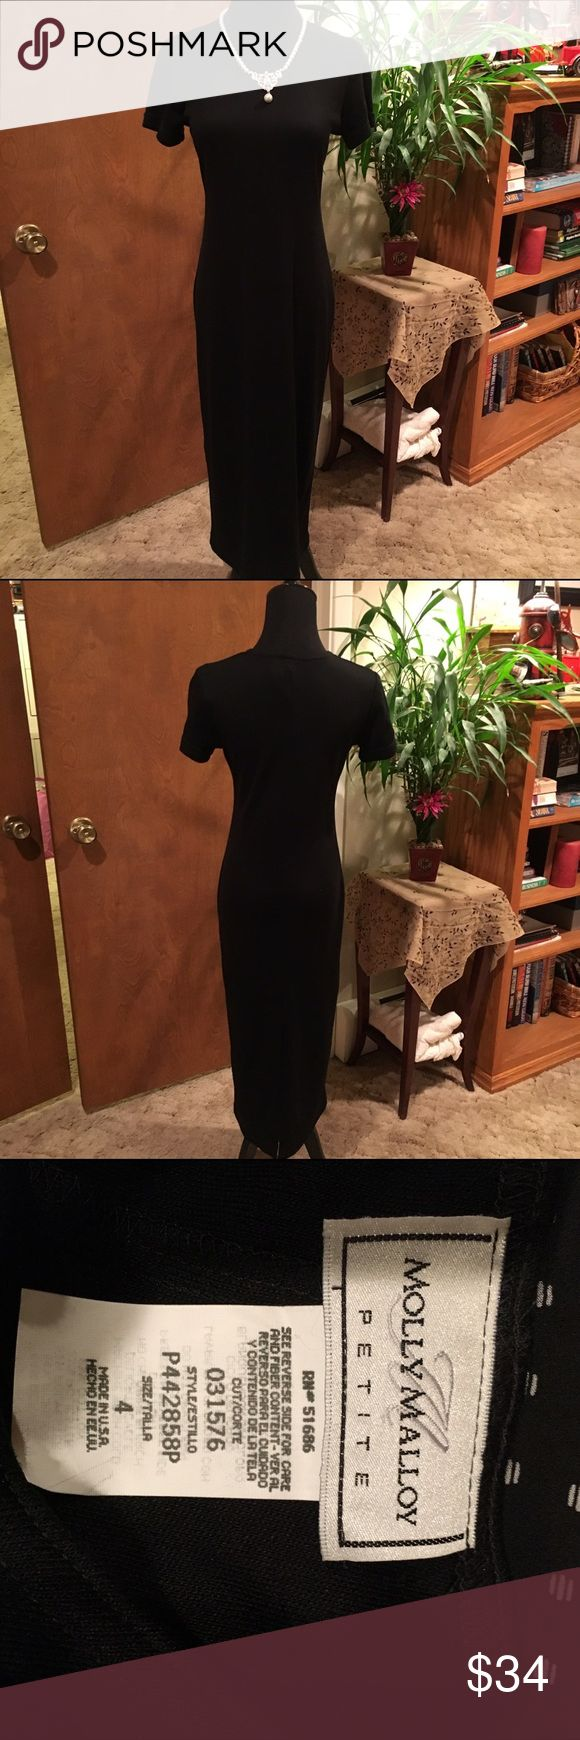 "Molly Malloy Petite dress size 4. This petite dress is considered tea length and a size 4 and is solid black. Measurements are shoulder to arm is 6"", bust laid flat is 16"", and shoulder to hem is 45"". Molly Malloy Dresses Maxi"